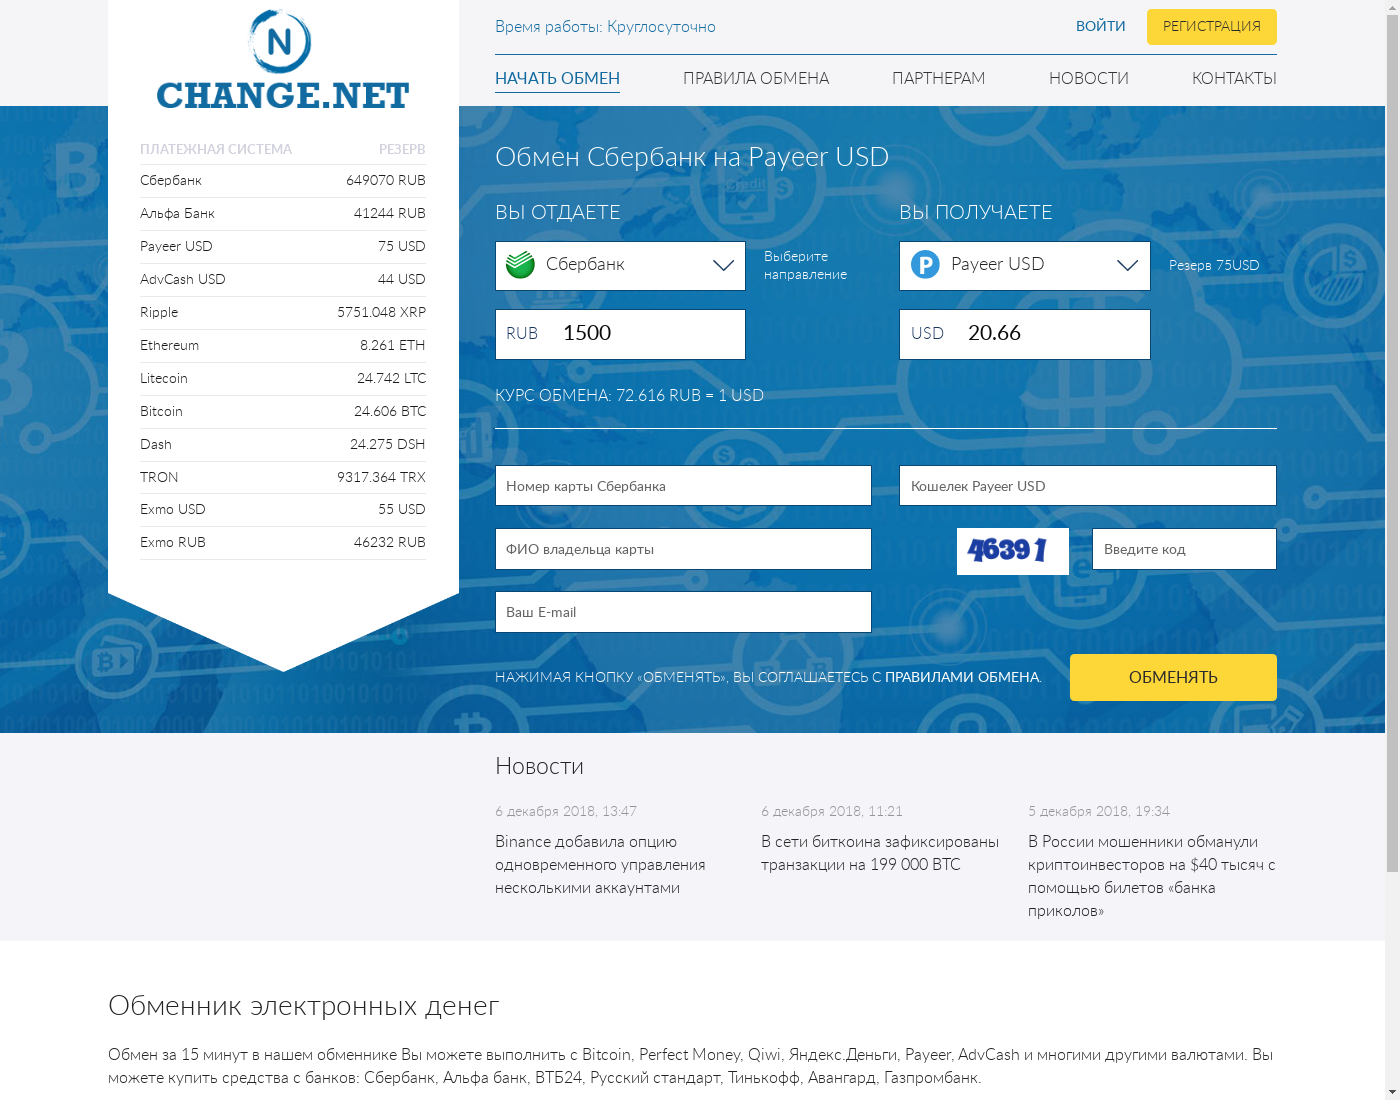 N-change user interface: the home page in English